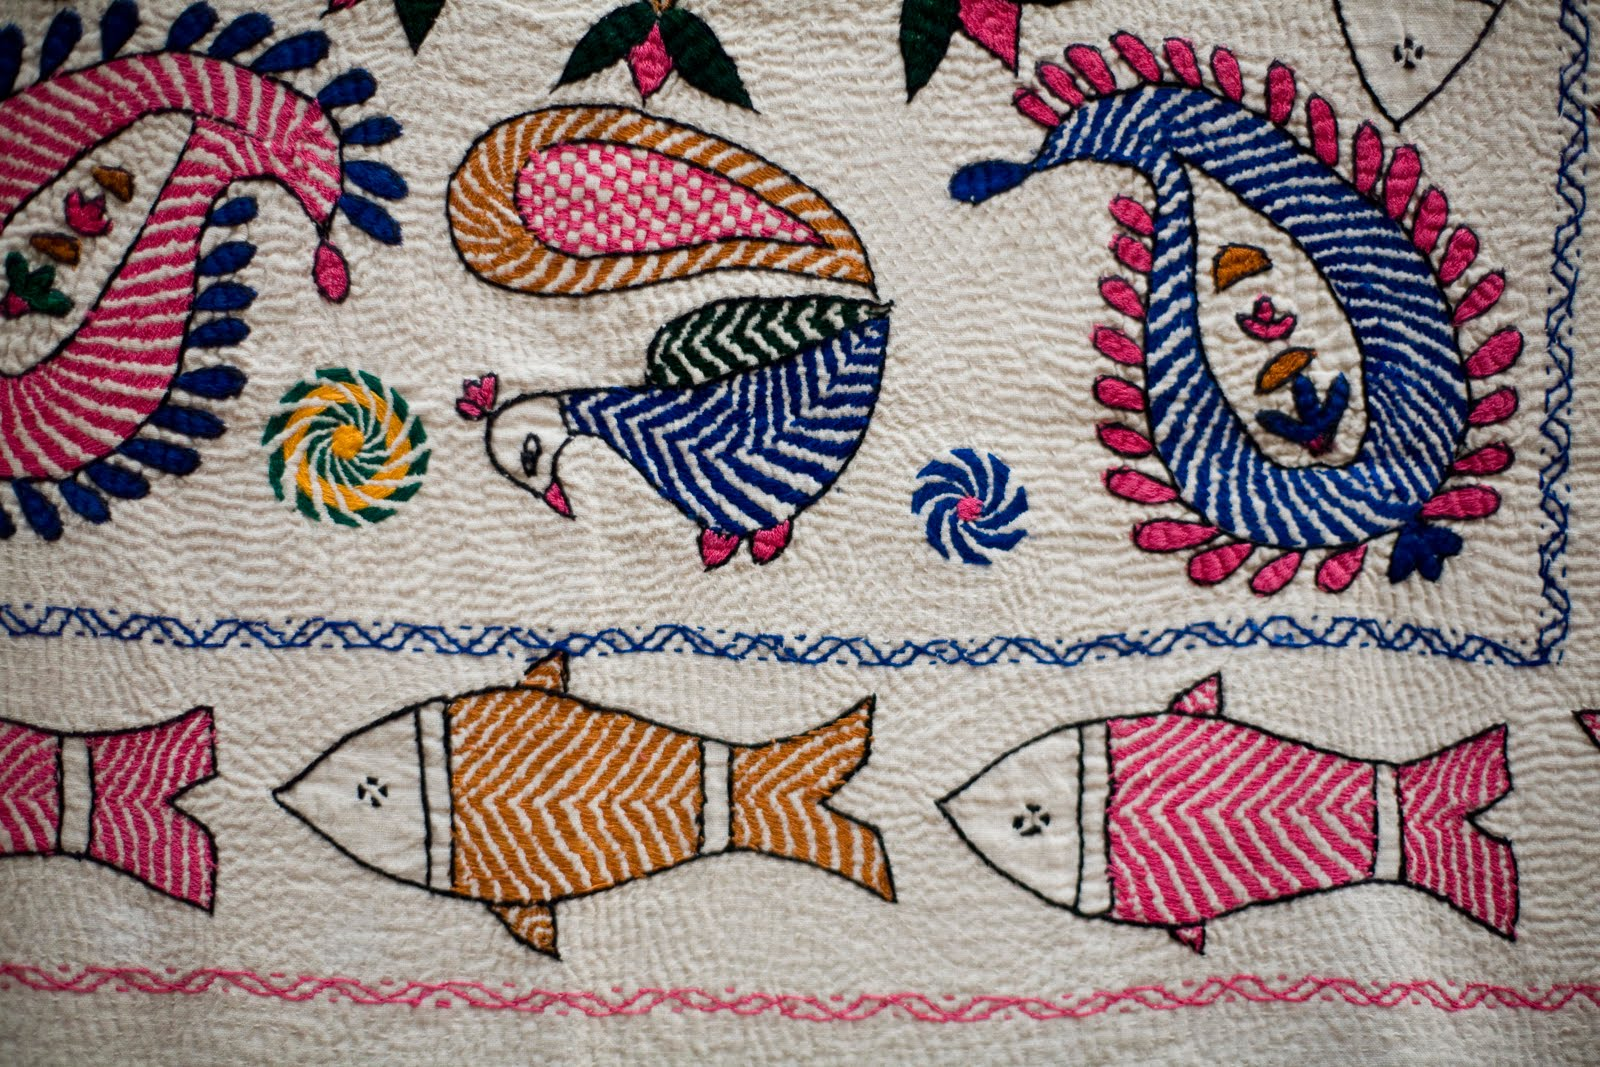 Kantha Embroidery Design Ideas | eHow.com